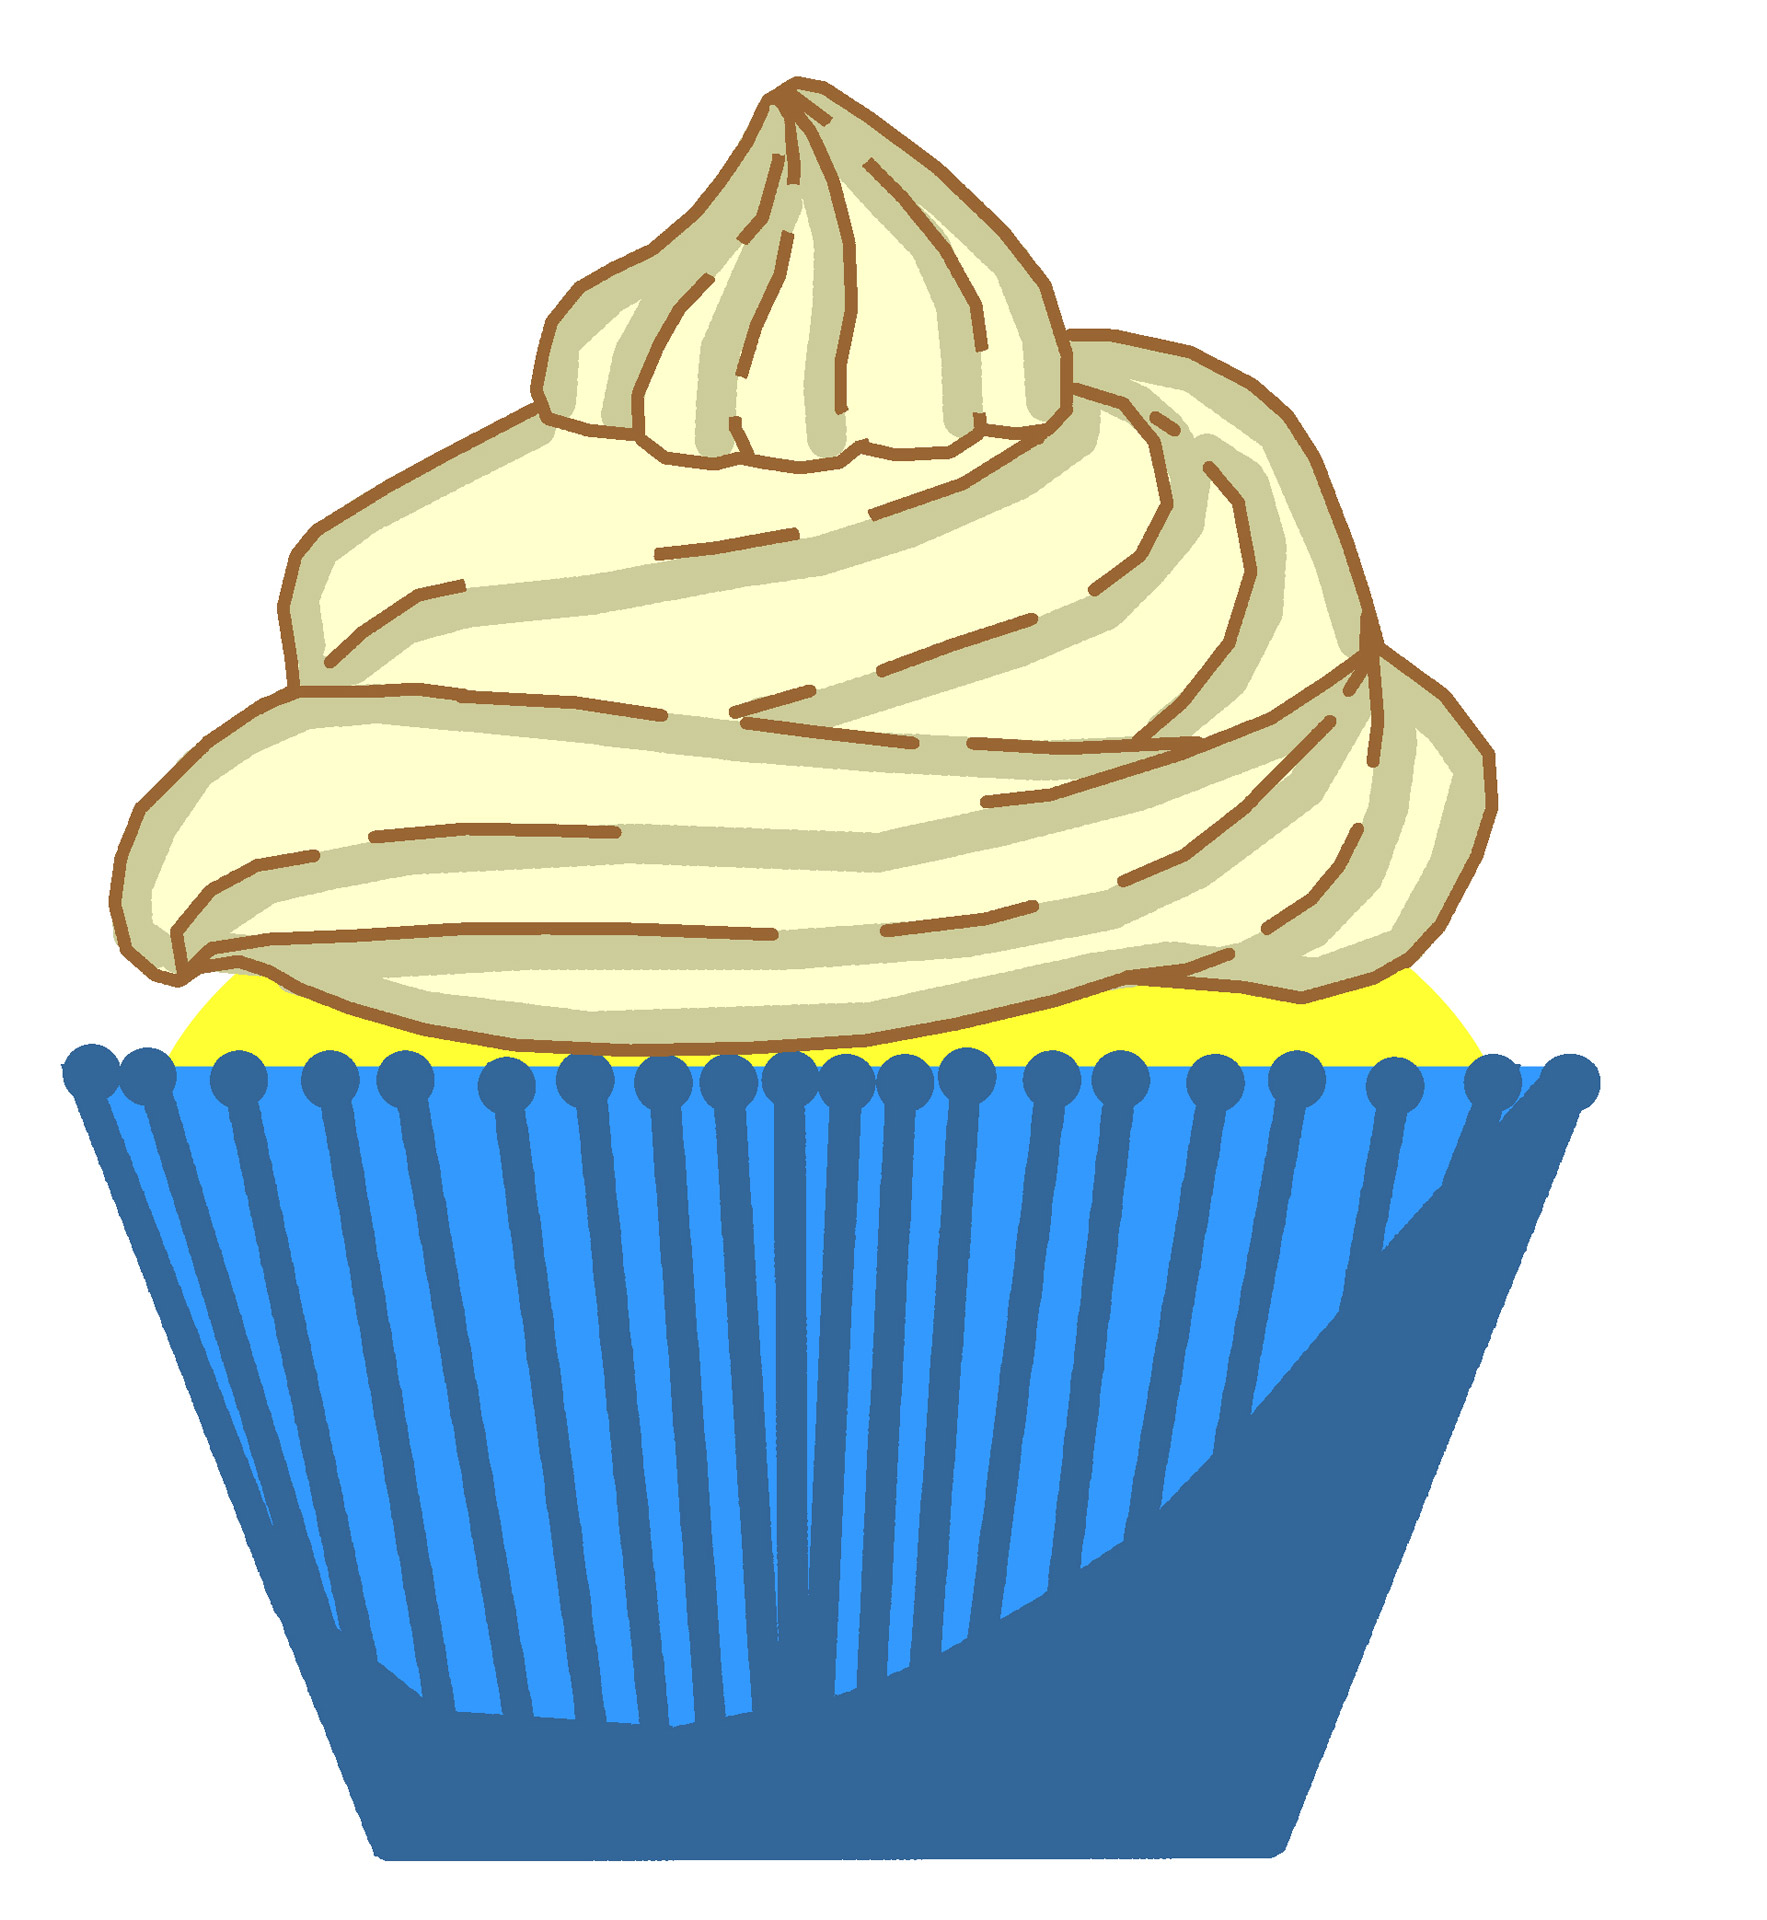 Cupcake With Candle Clipart - Clipart Kid